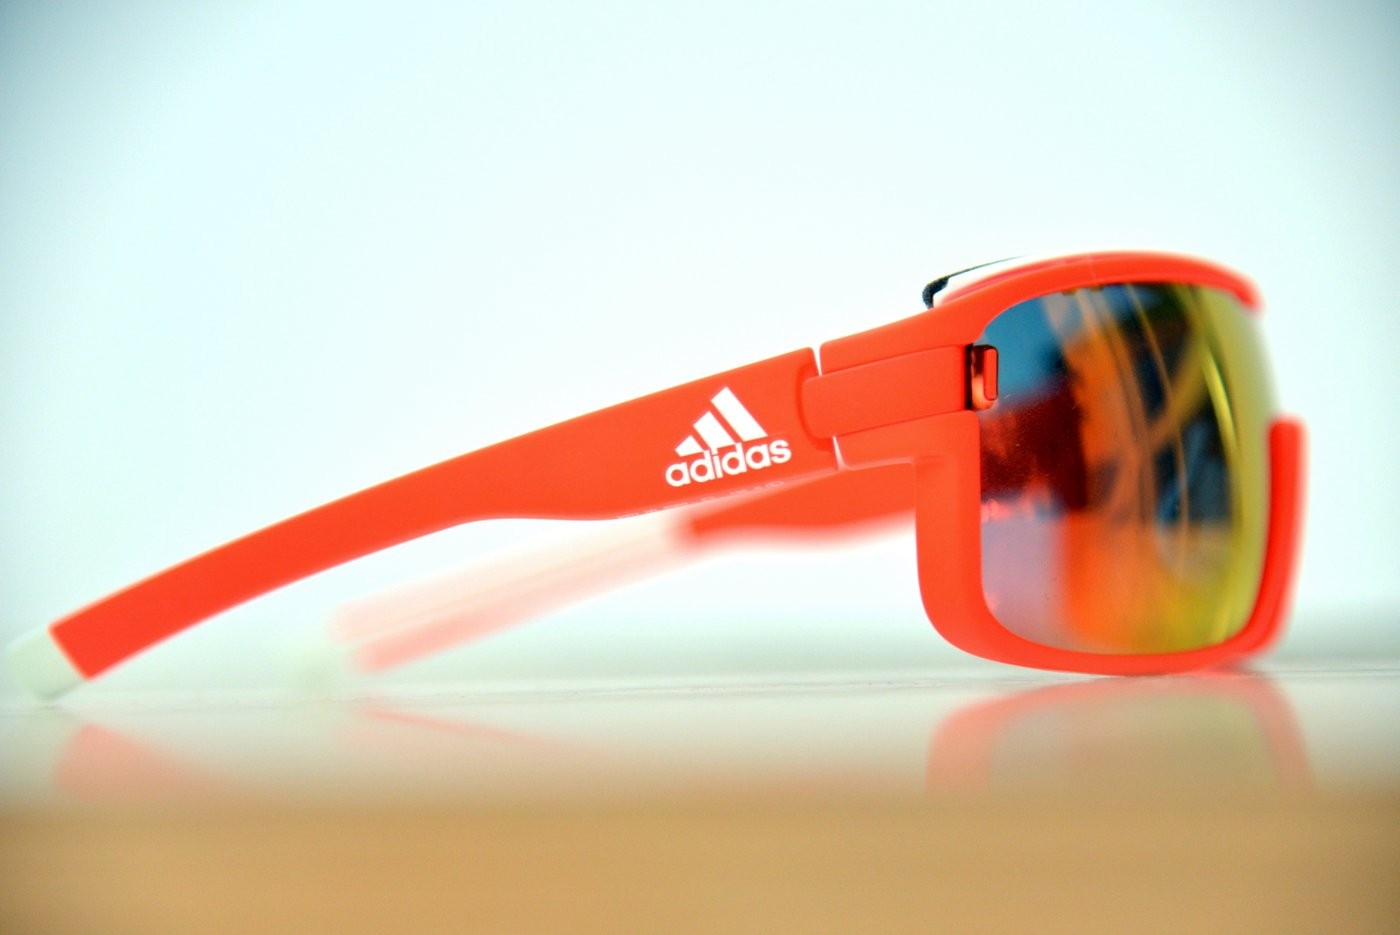 Adidas sunglasses